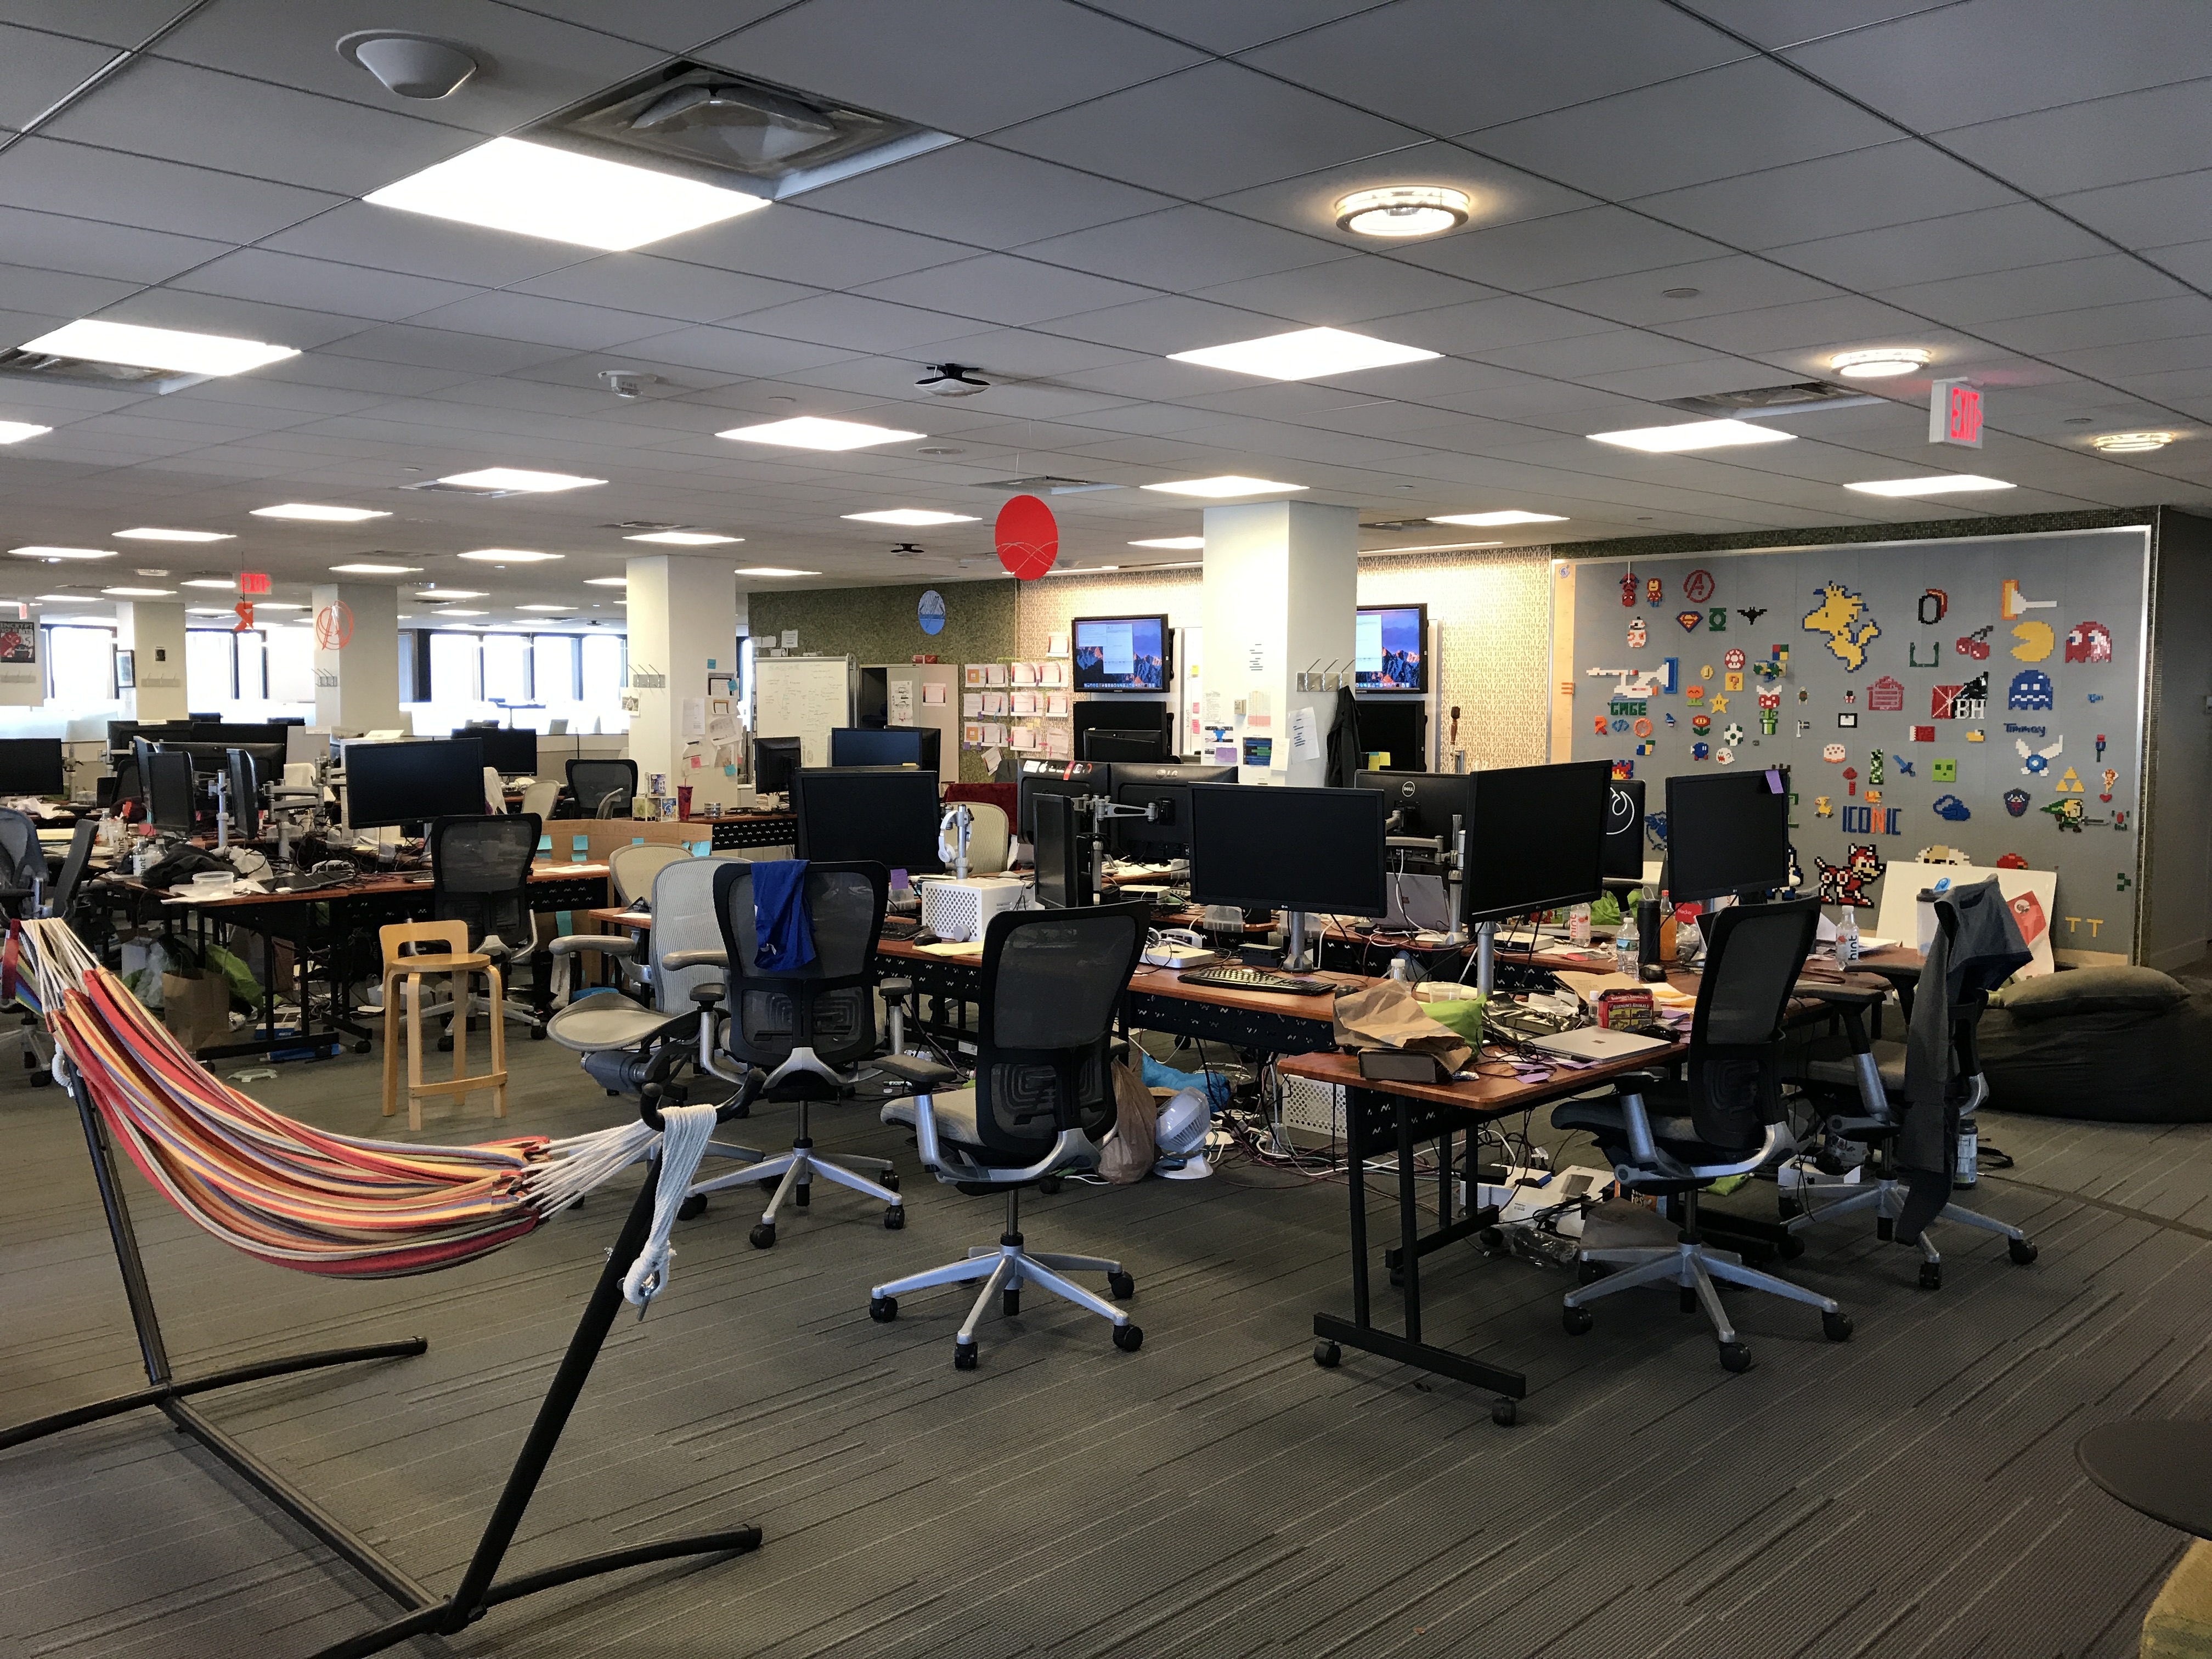 The Garage space at Microsoft New England's NERD.